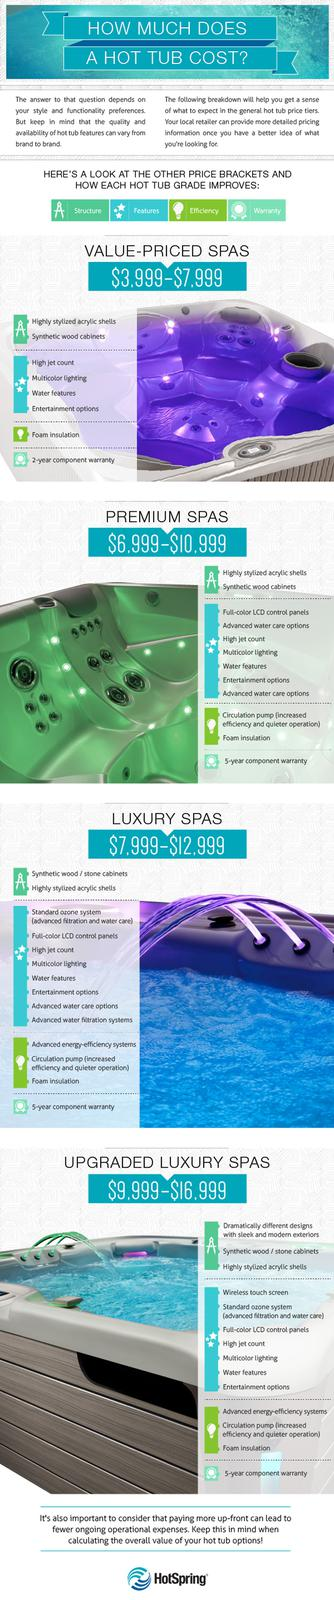 How Much Do Hot Tubs Cost PoolCo (Tri-State Pool & Spa) 529-3200 ...